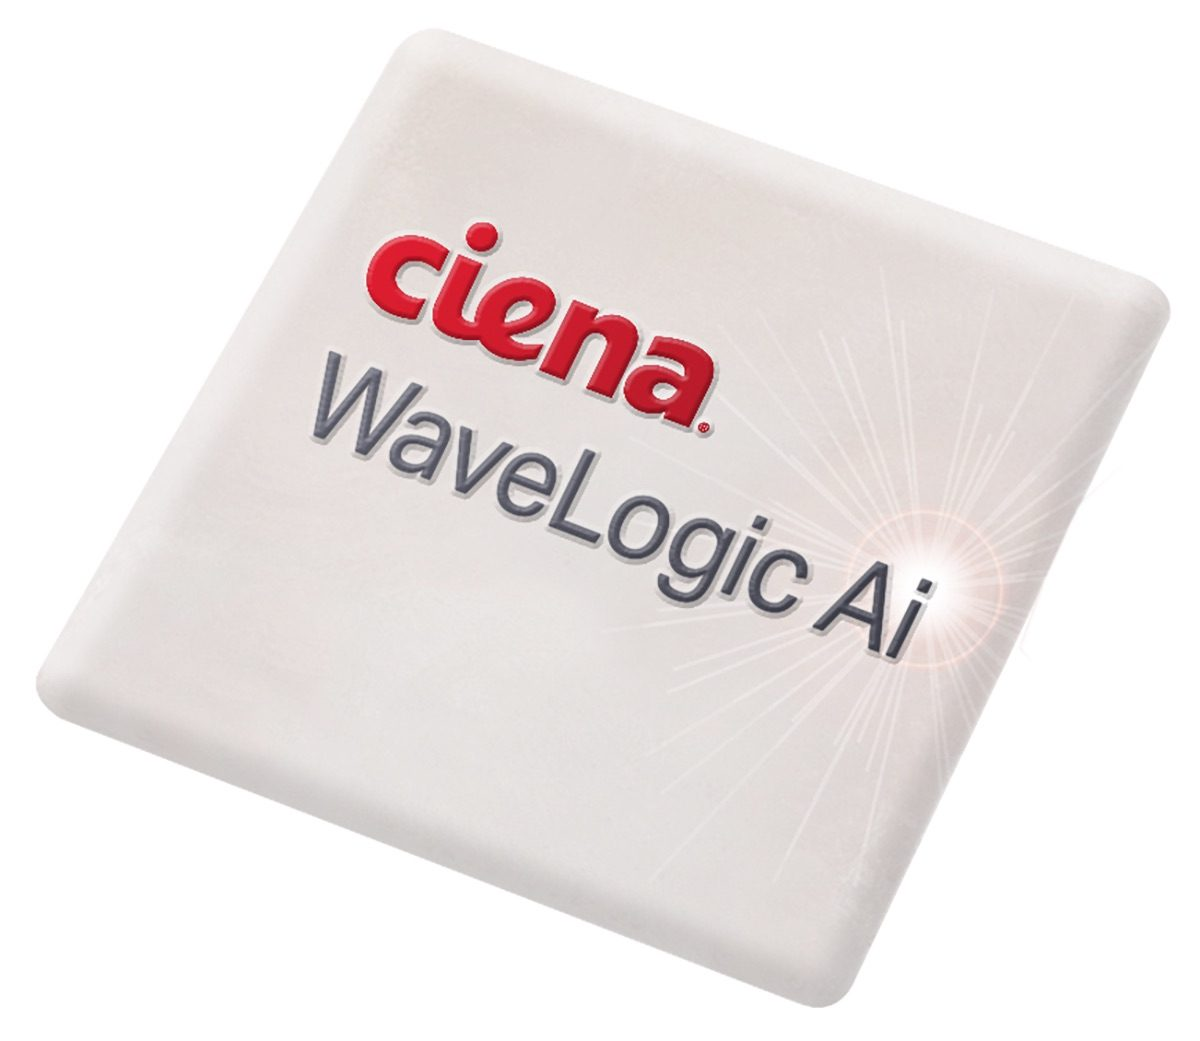 Ciena Wavelogic Ai and 400G Roadmap